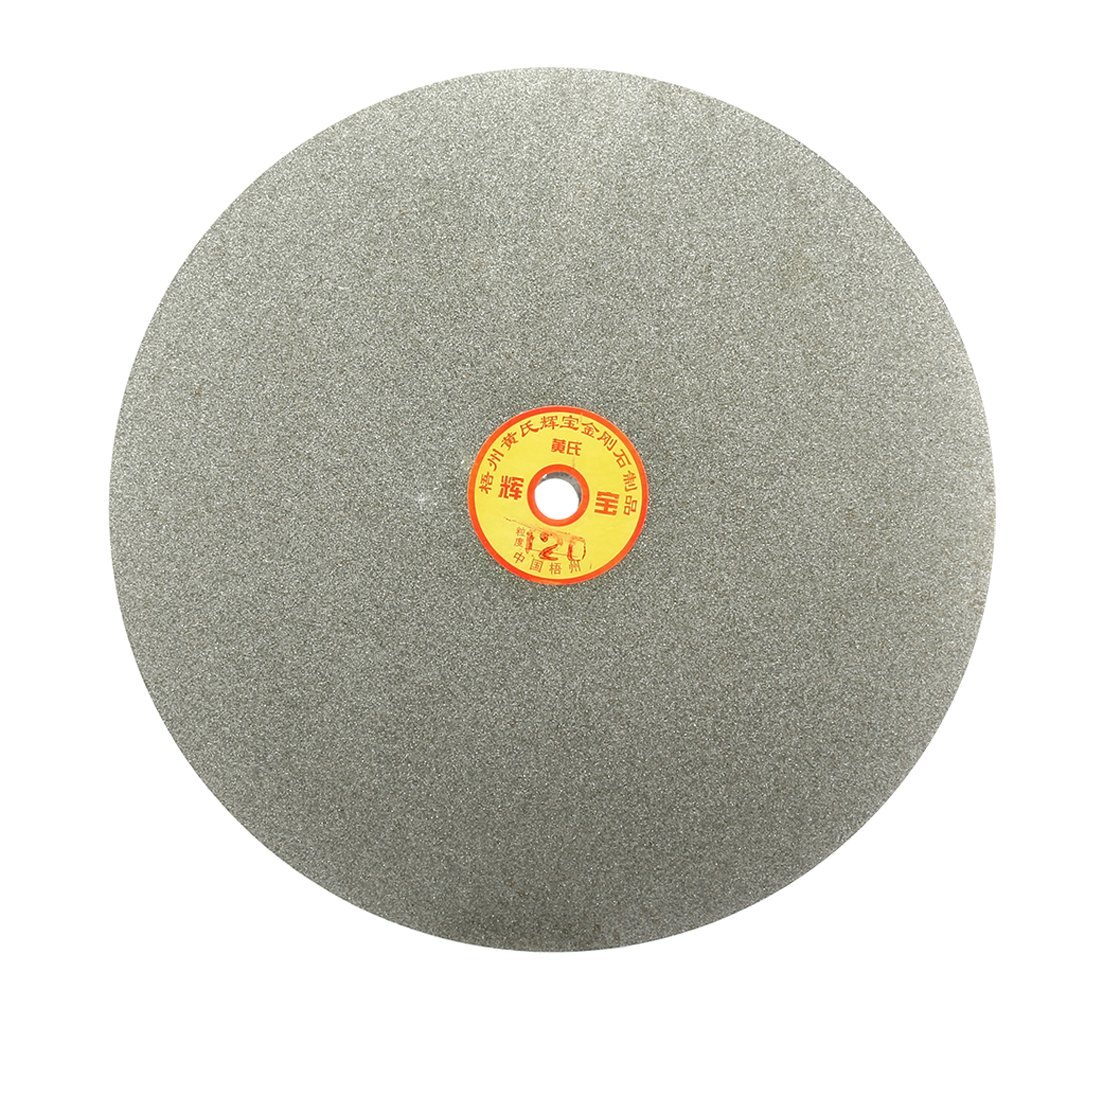 uxcell 250mm 10-inch Grit 120 Diamond Coated Flat Lap Disk Wheel Grinding Sanding Disc